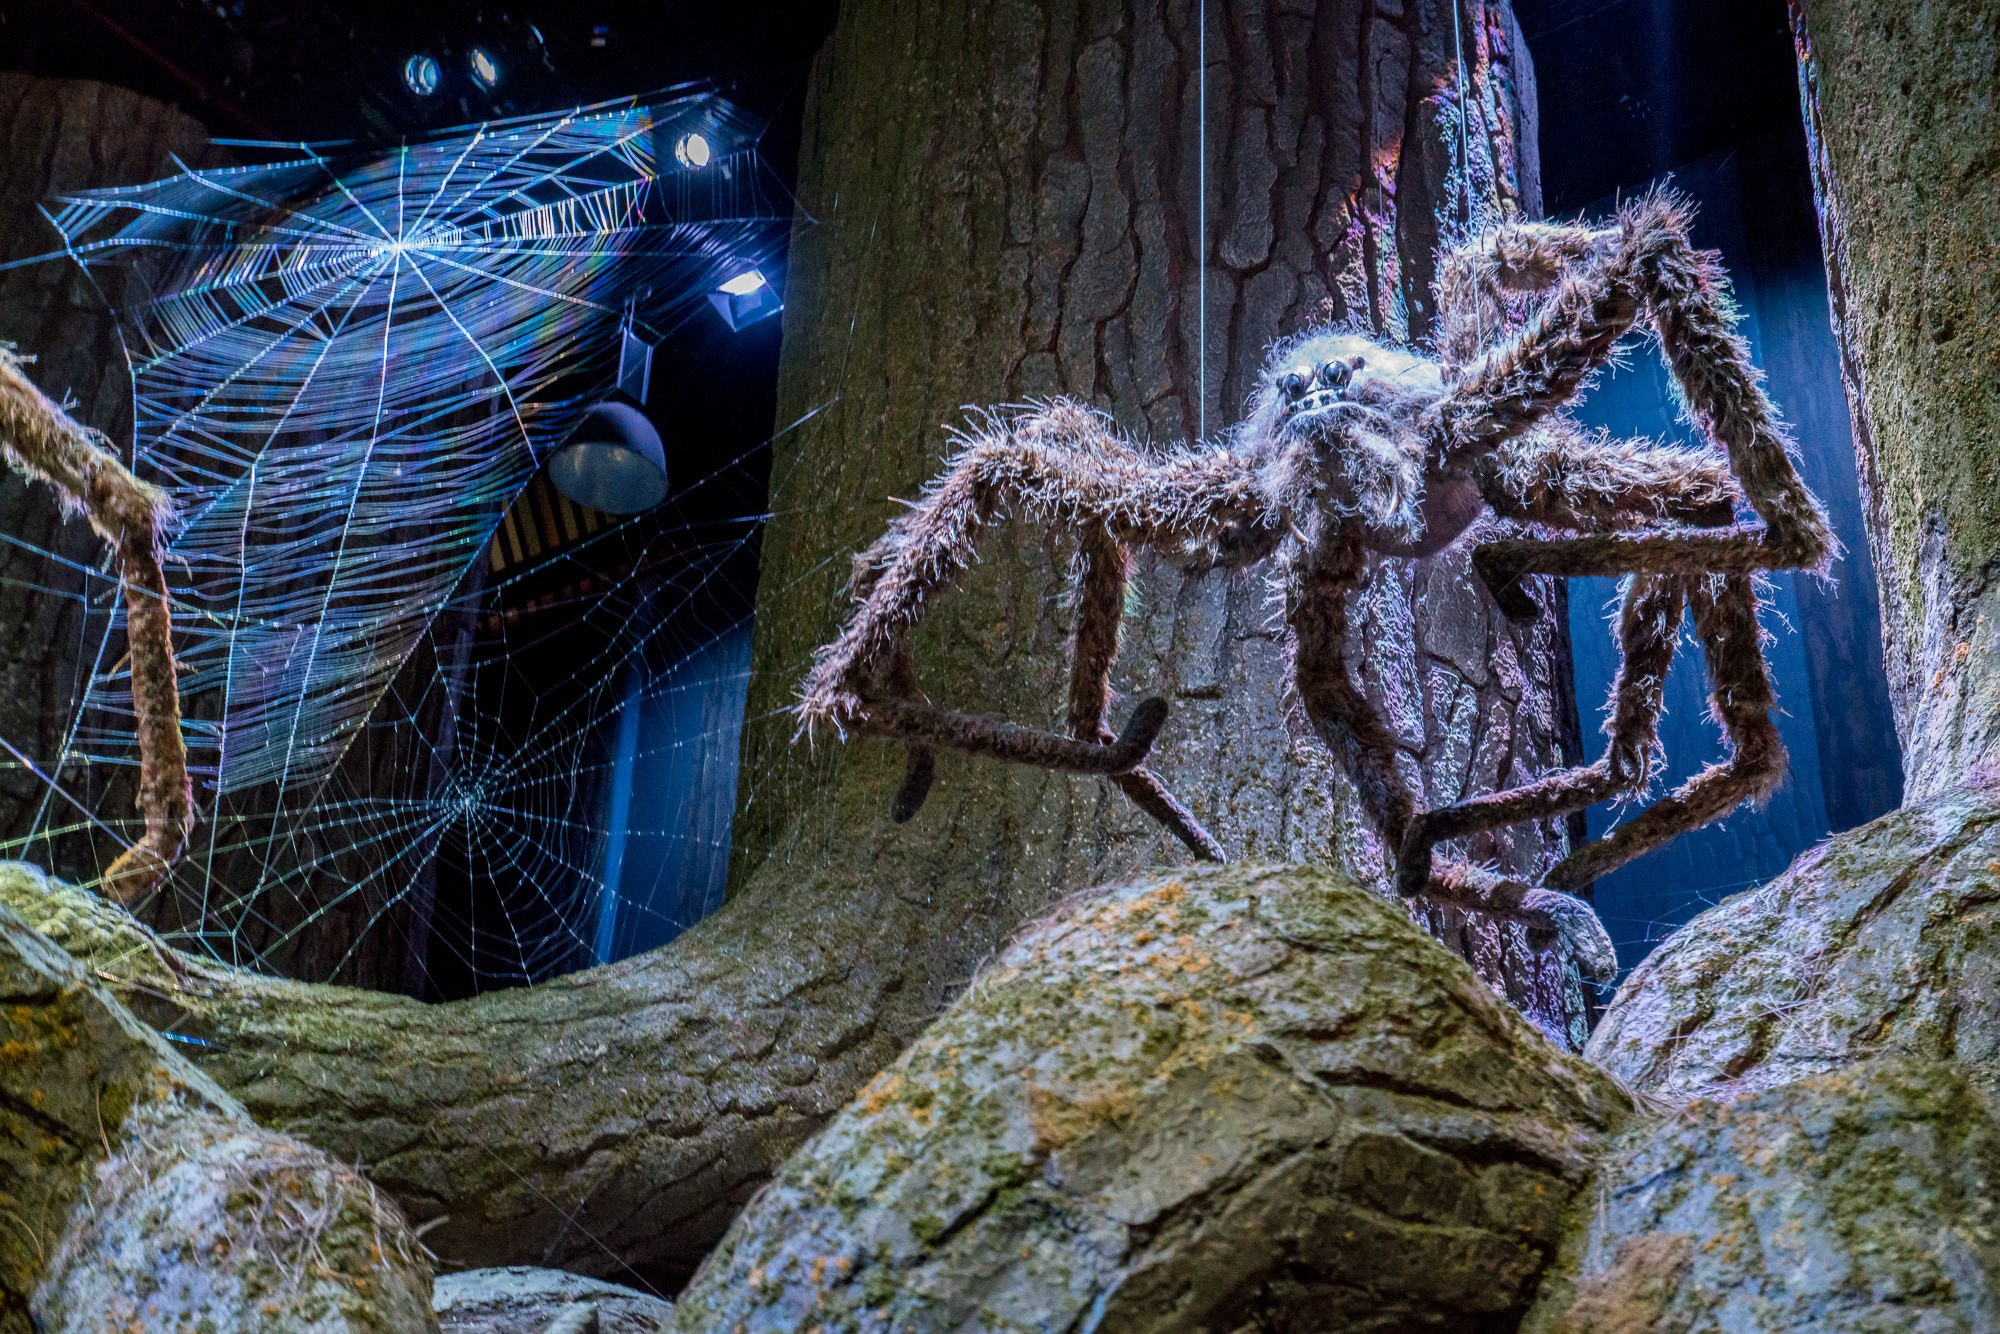 Spiders inside the Forbidden Forest as seen in Harry Potter movies at the Warner Bros. Studio Tour London.